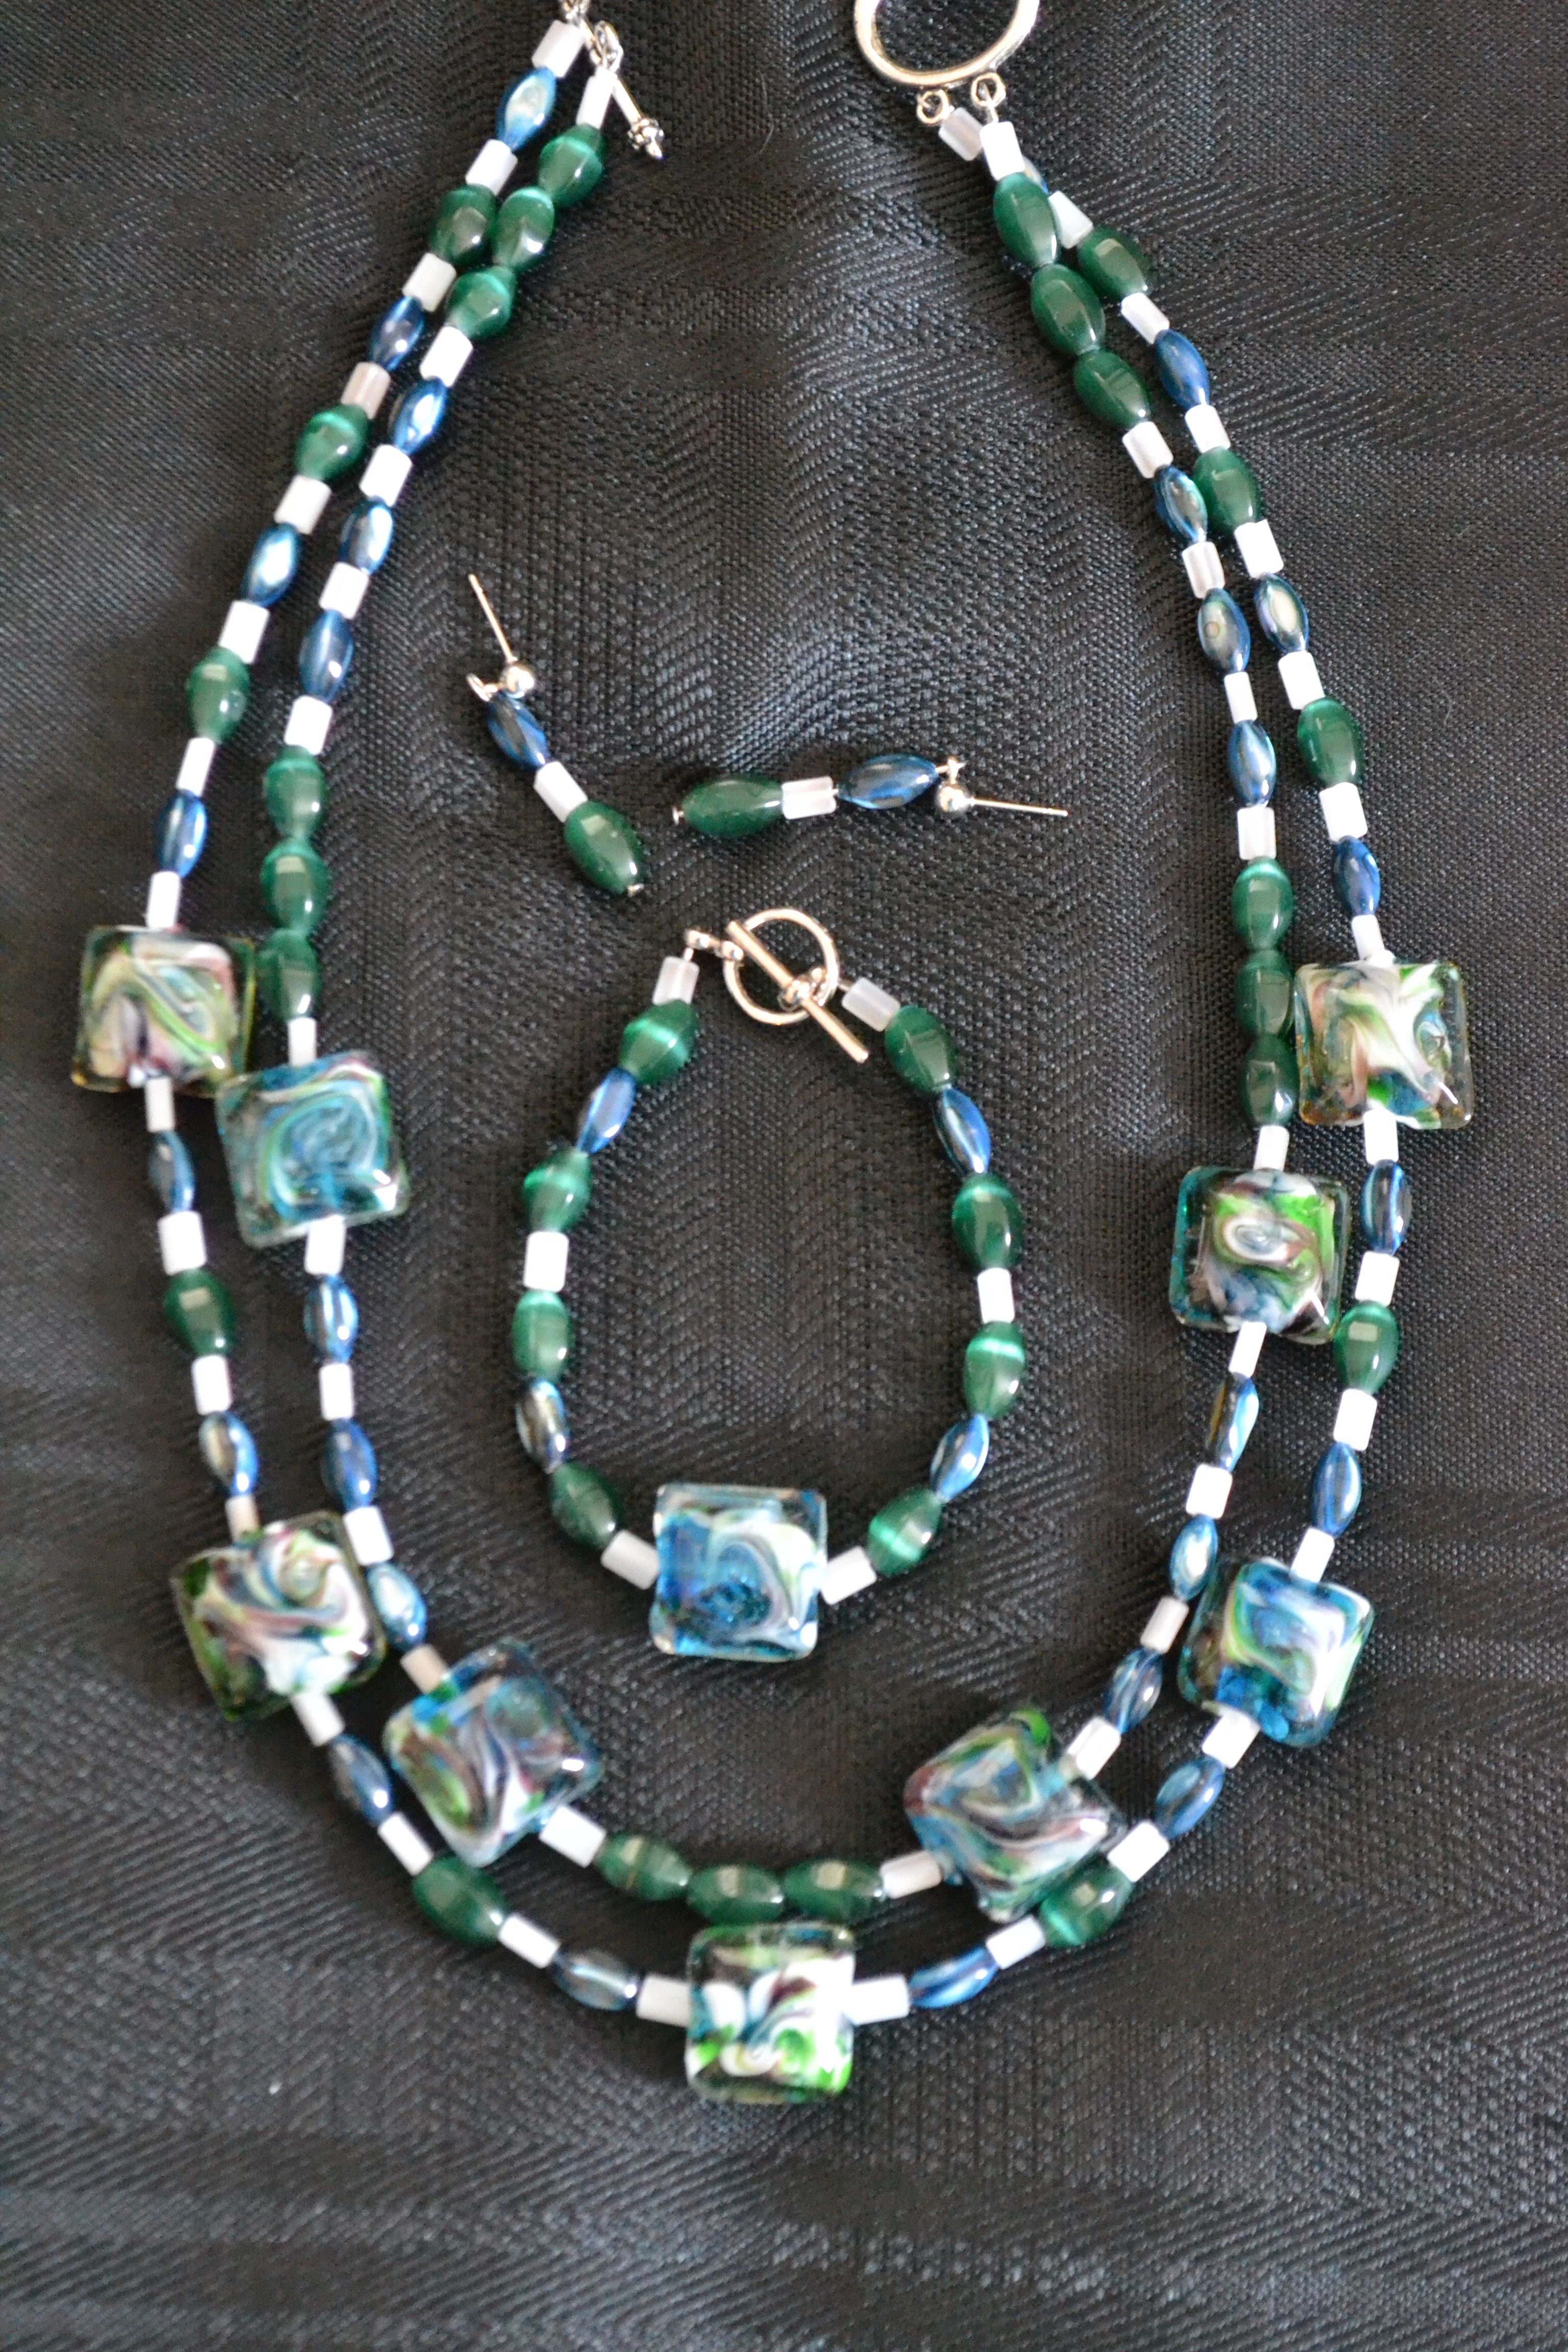 Double strand necklace in blue, green cat's eye and white.  Larger beads of coordinating colors, and hint of plum  included in necklace  Matching bracelet  Coordinating earrings-silver posts with dangle  Items sold separately-Multiple Item Discount!    Earrings-$6  Bracelet-$6  Necklace-$19  Ask about discount for more than one item!